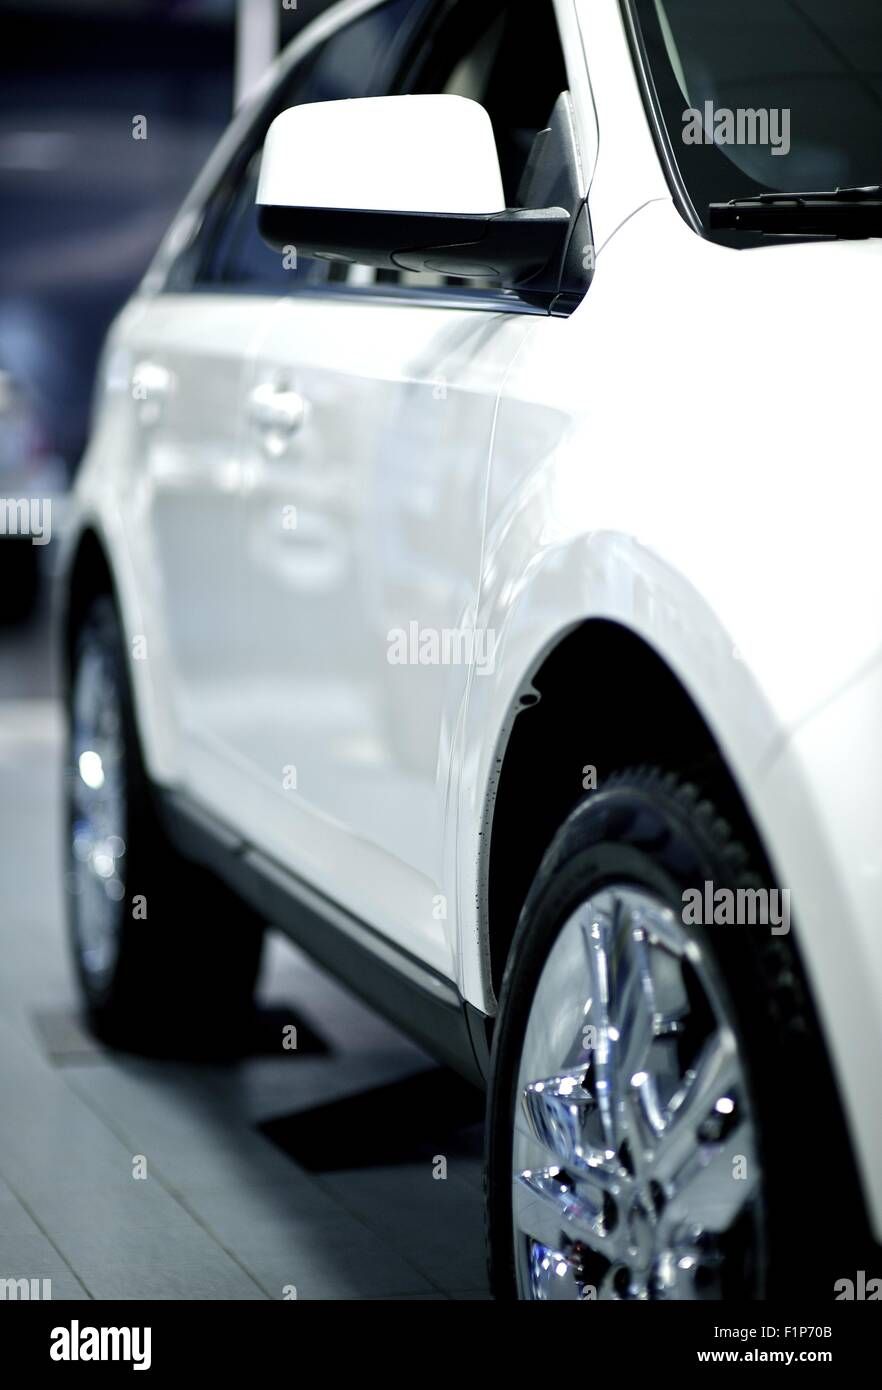 Chrome Car Wheels Stock Photos & Chrome Car Wheels Stock Images - Alamy